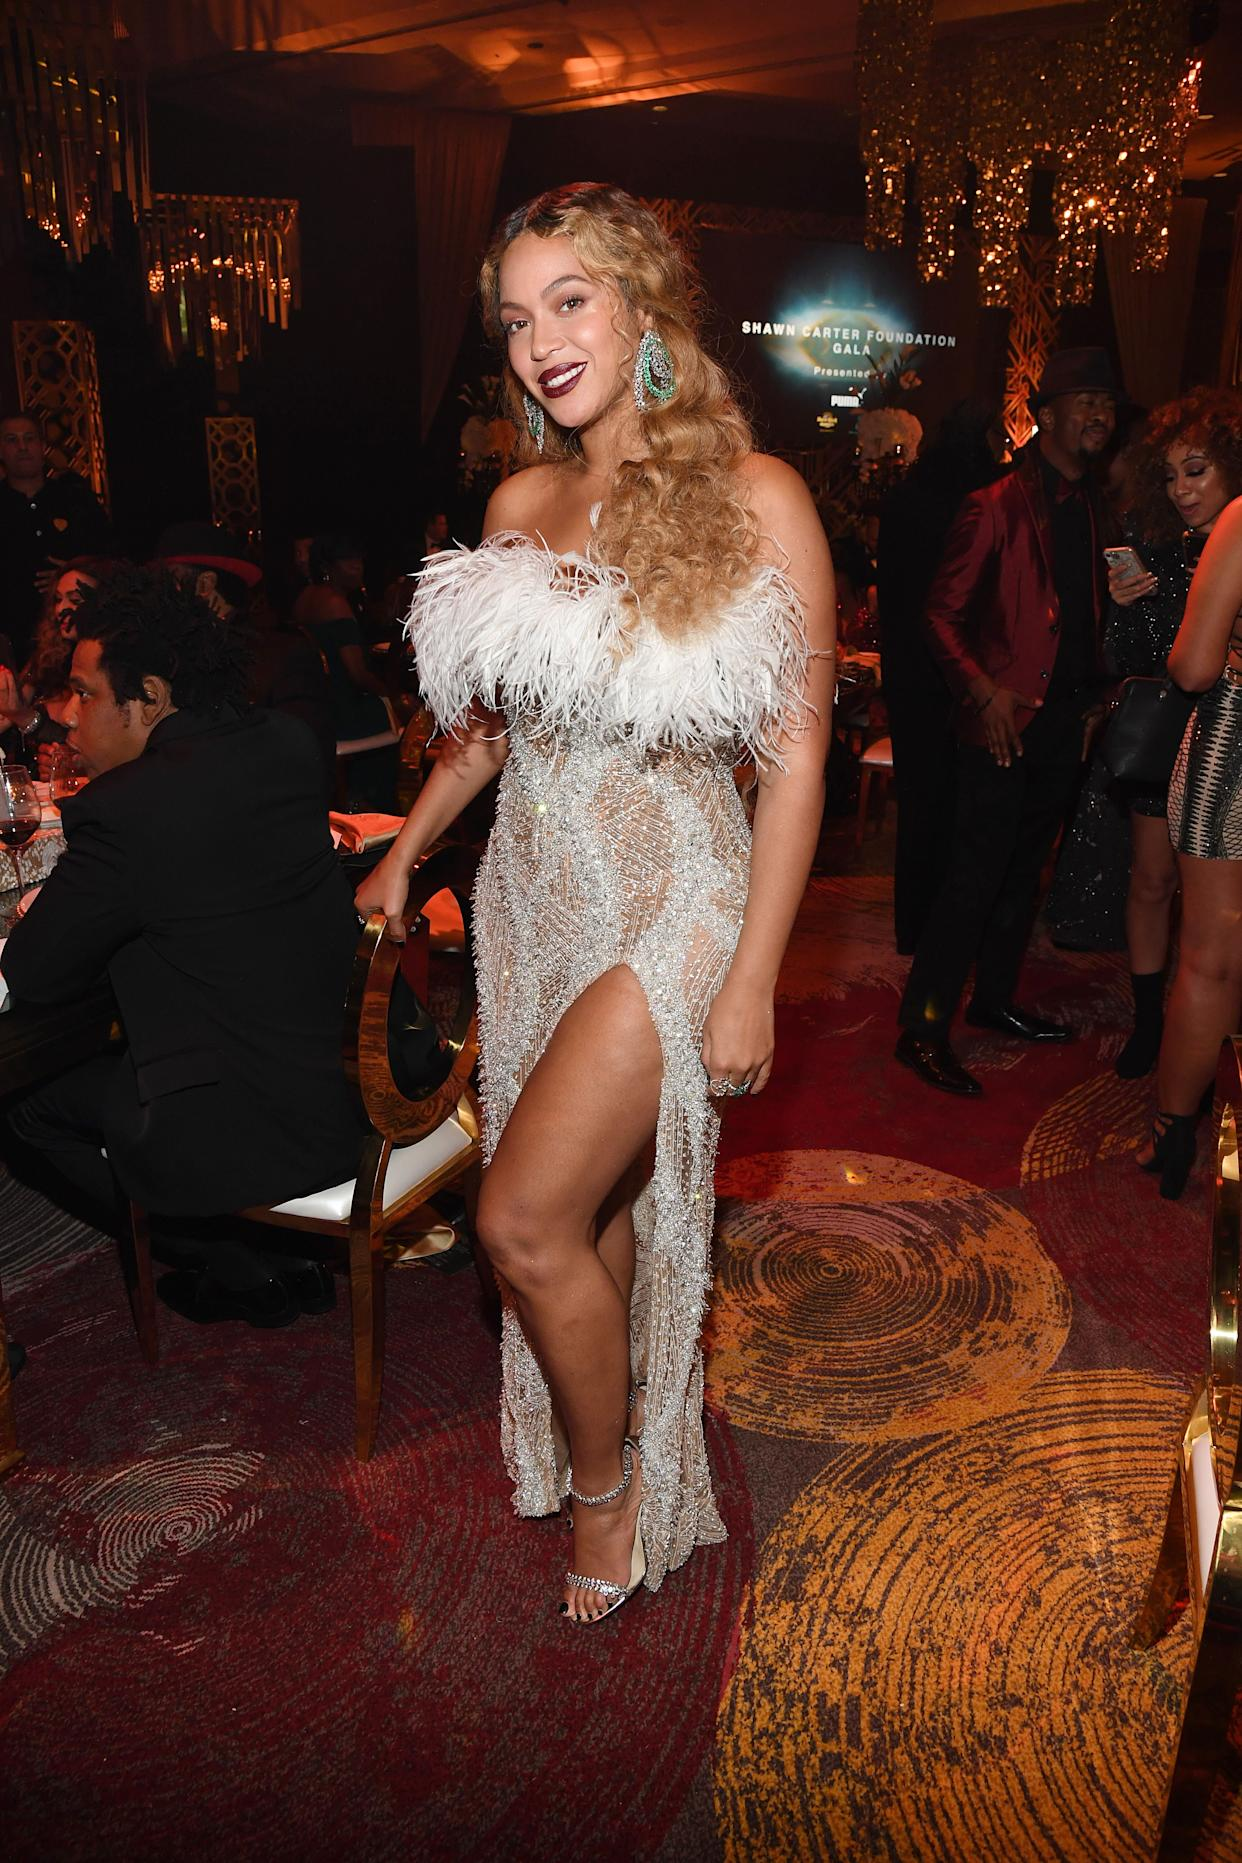 Beyoncé at the Shawn Carter Foundation Gala in Hollywood, Florida, on Nov. 16.